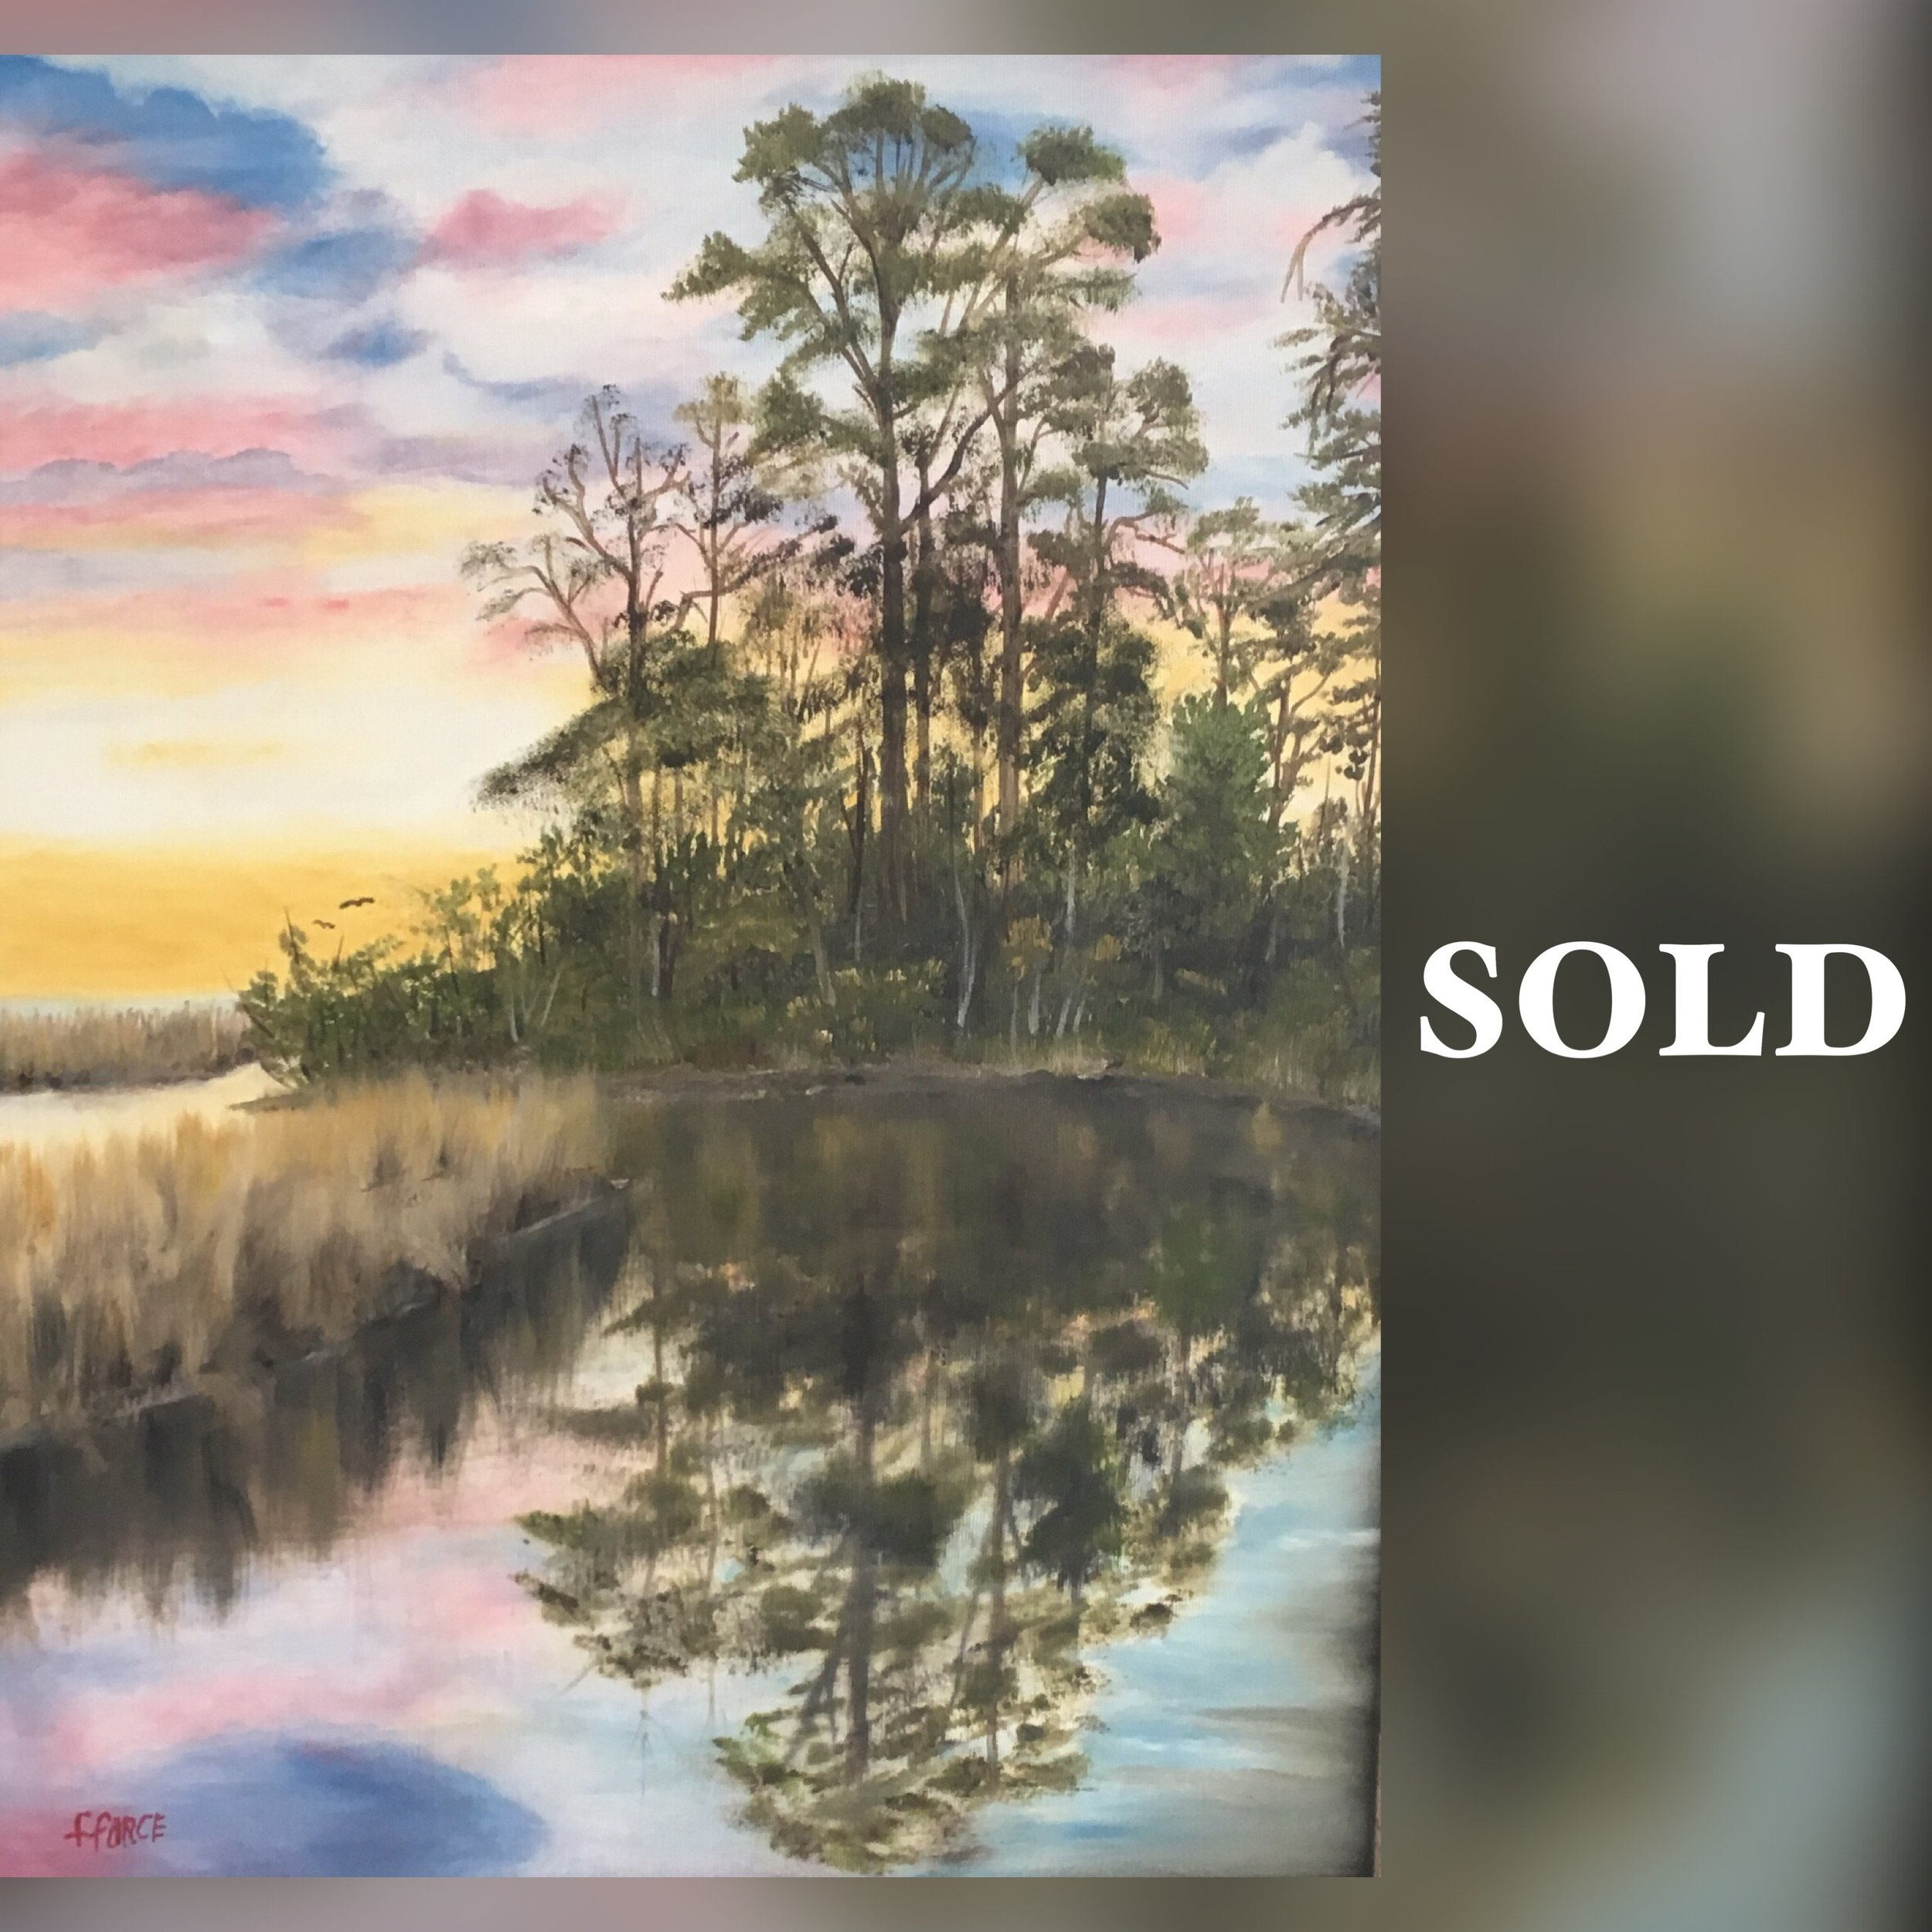 Reflections - Force Sold.JPG